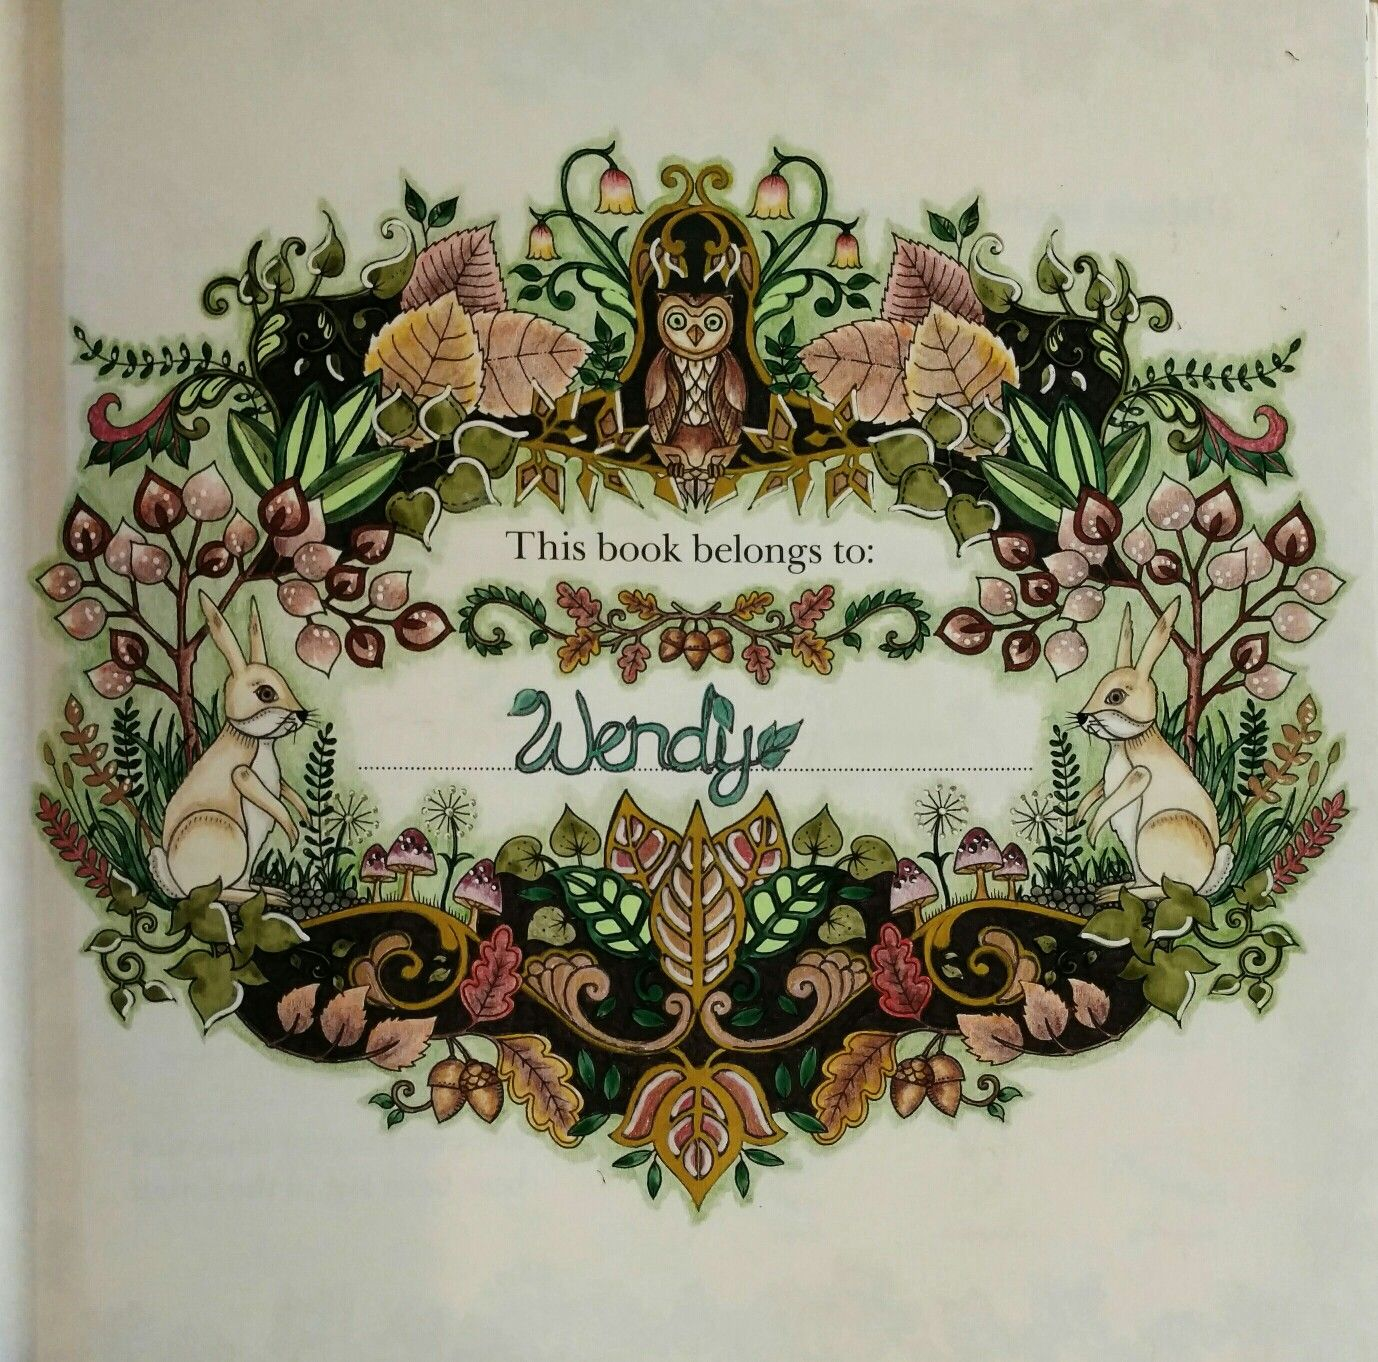 Enchanted Forest Johanna Basford Name Page By Wendy Coloring BooksAdult